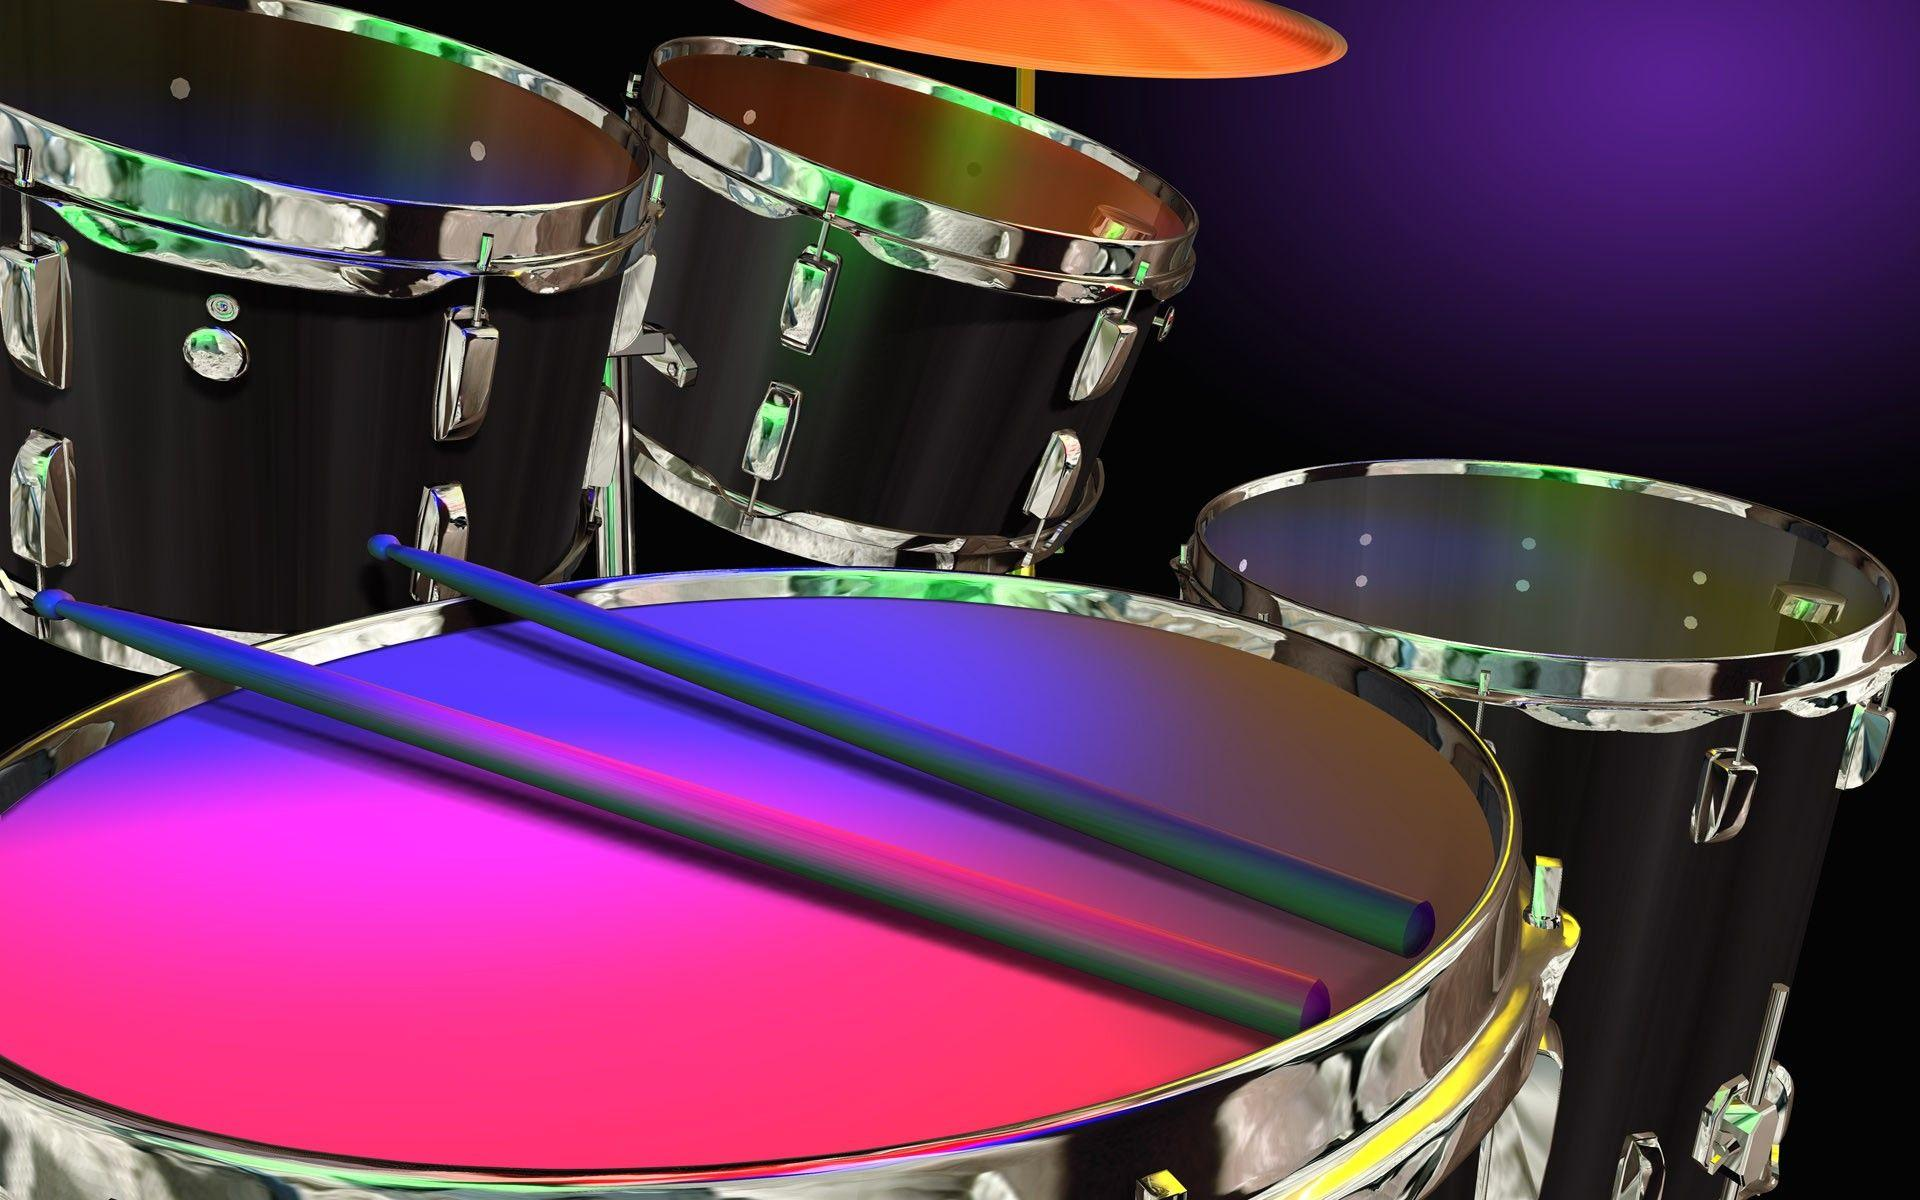 Wallpaper : musical instrument, drums, Drummer, skin head percussion ...